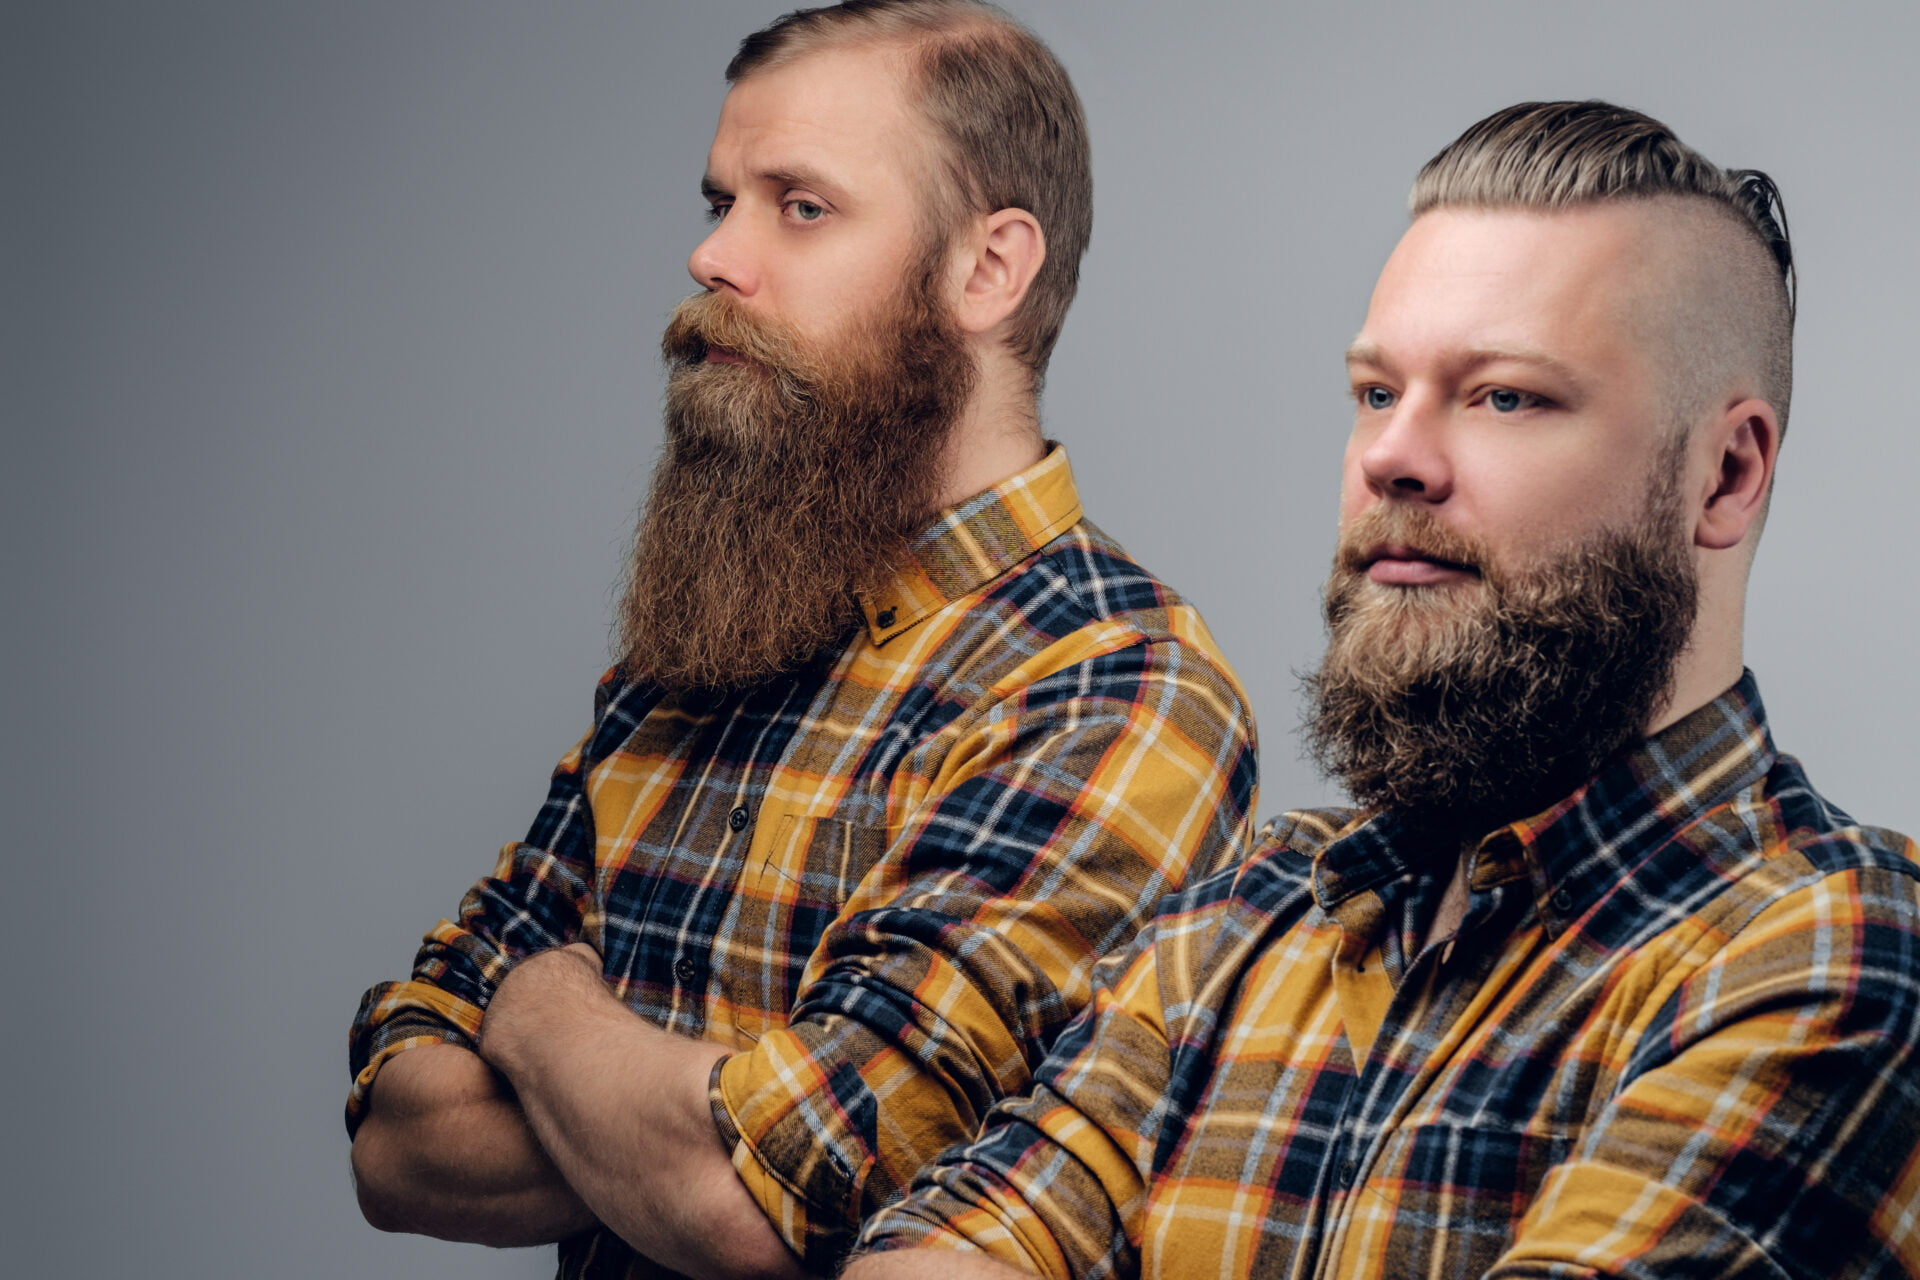 Two bearded hipsters dressed in a yellow plaid shirt isolated on grey vignette background